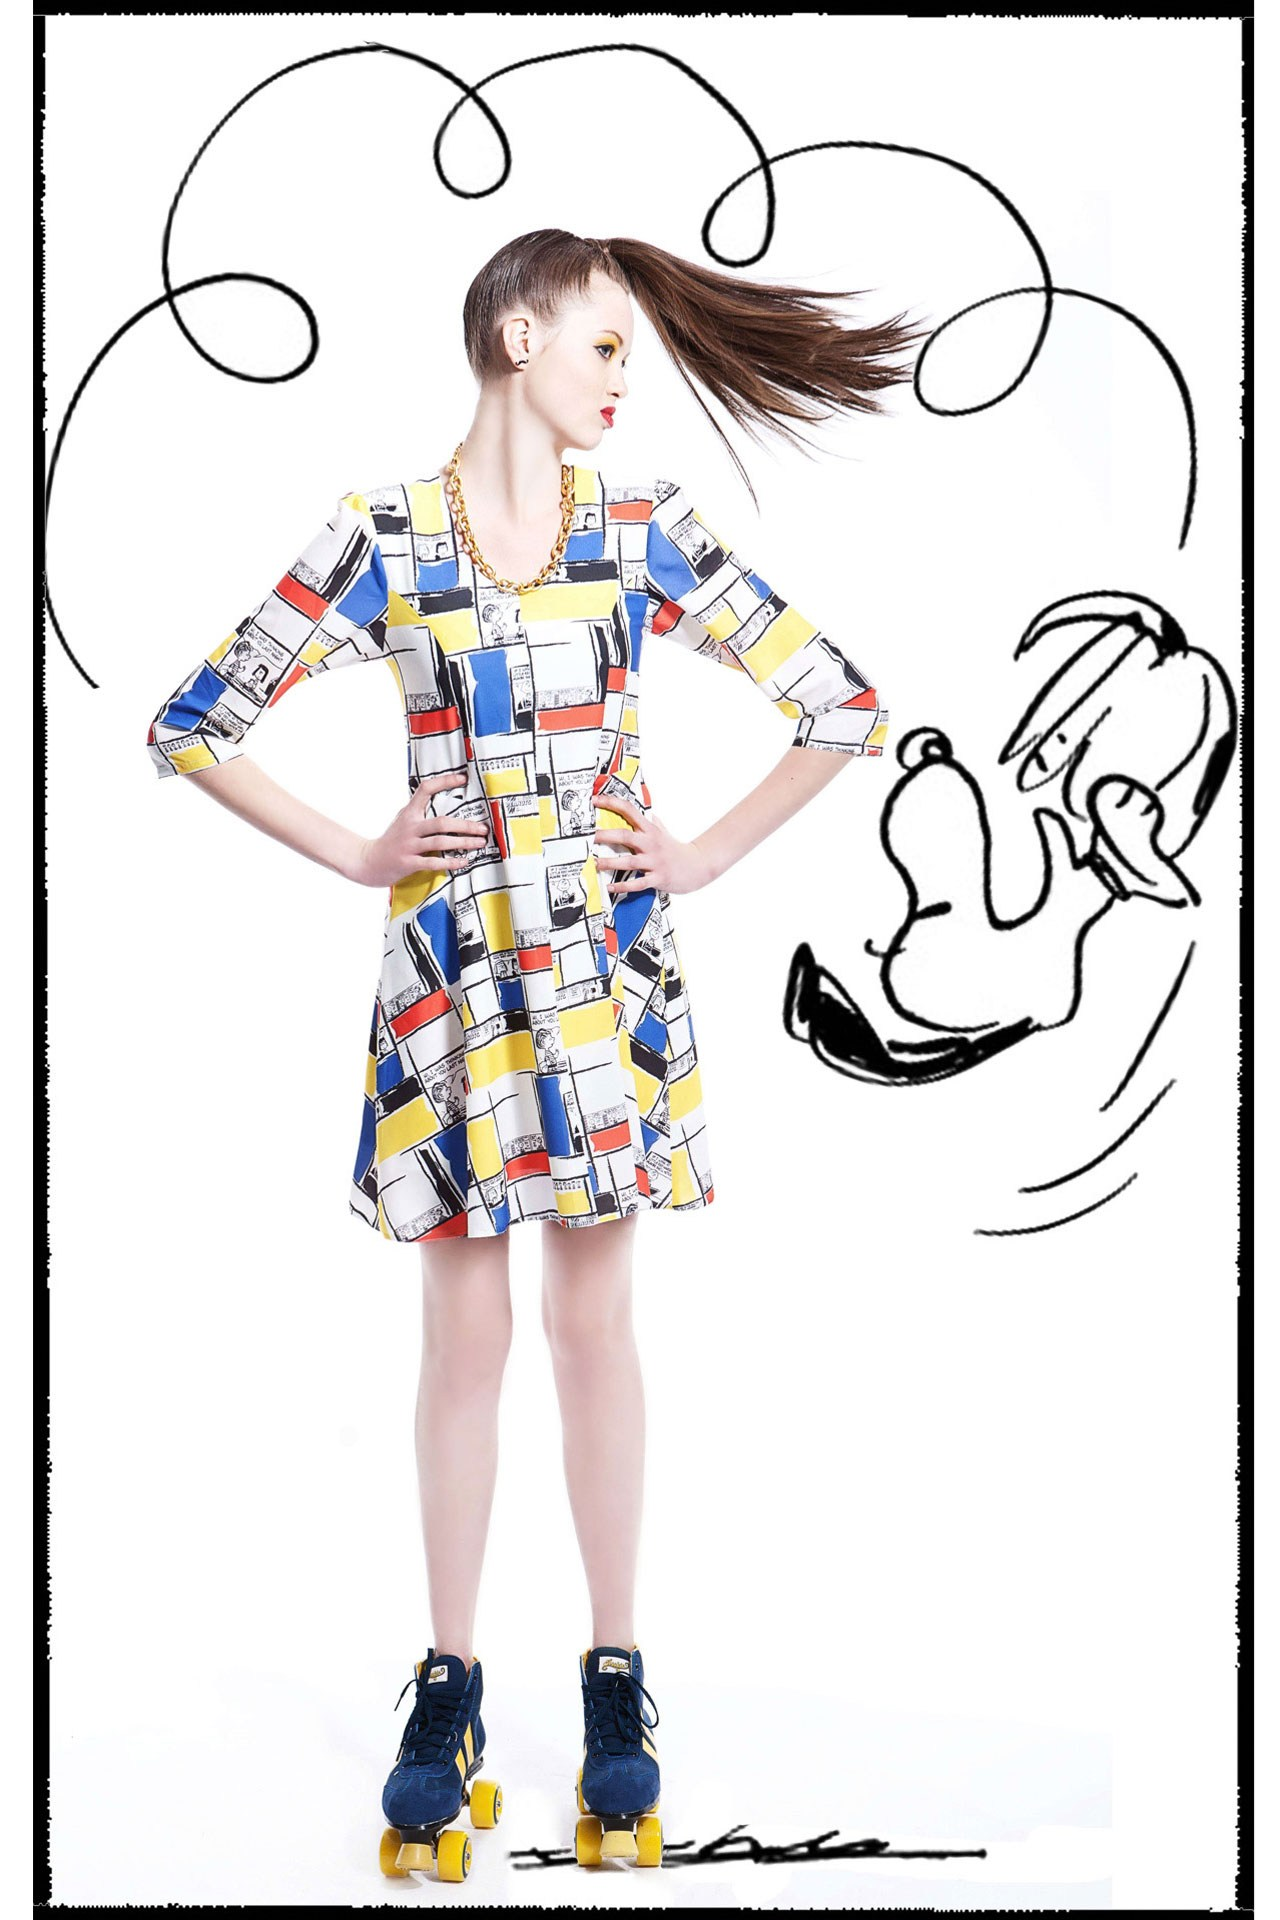 Rodnik-Peanuts-06-Vogue-21May13-Andrew Farrar_b